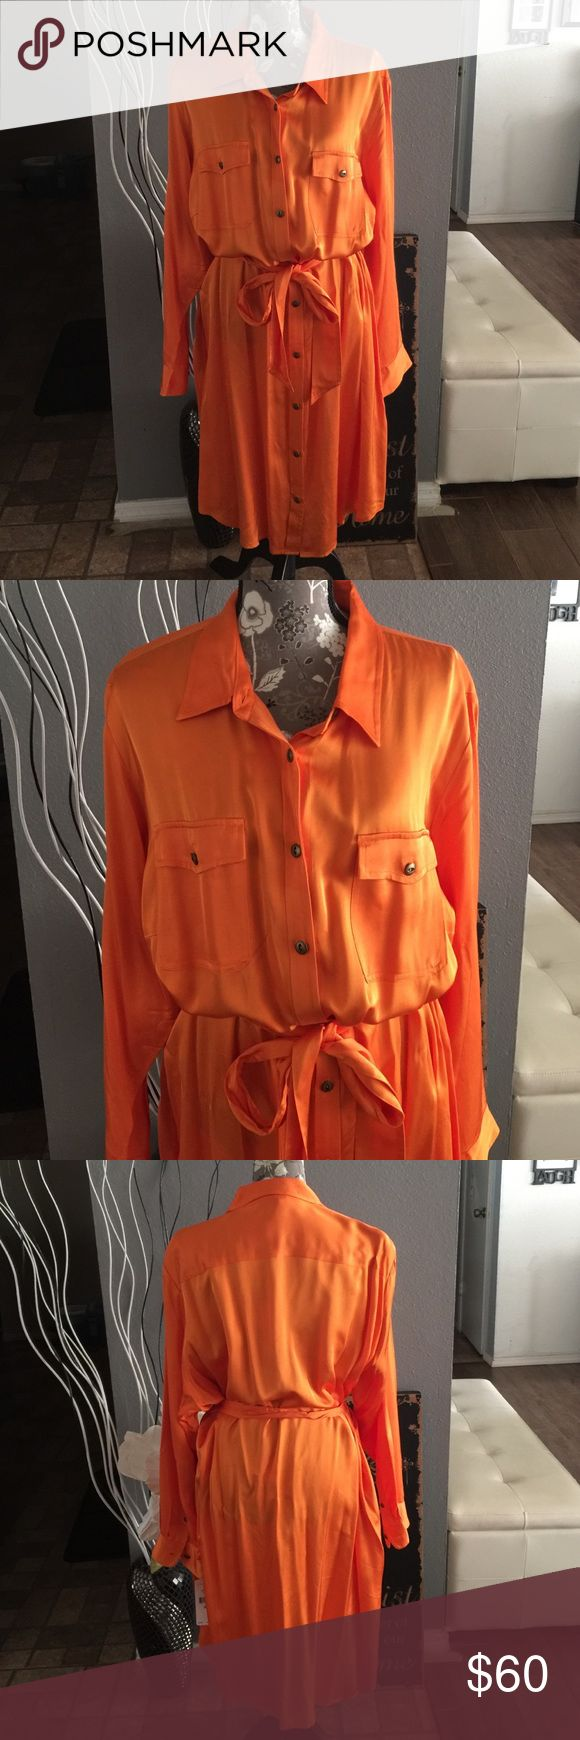 NWT Lauren Ralph Lauren orange shirt dress sz 22W NWT Lauren Ralph Lauren women's orange color long sleeve shirt dress sz 22W . Never worn!! Very sophisticated and classy look for work wear. Material is made out of 100% Viscose. There are no rips tears or odor.  Please refer to pics for true detail description of the condition and please message me if you have any questions thank you and happy shopping! Lauren Ralph Lauren Dresses Long Sleeve